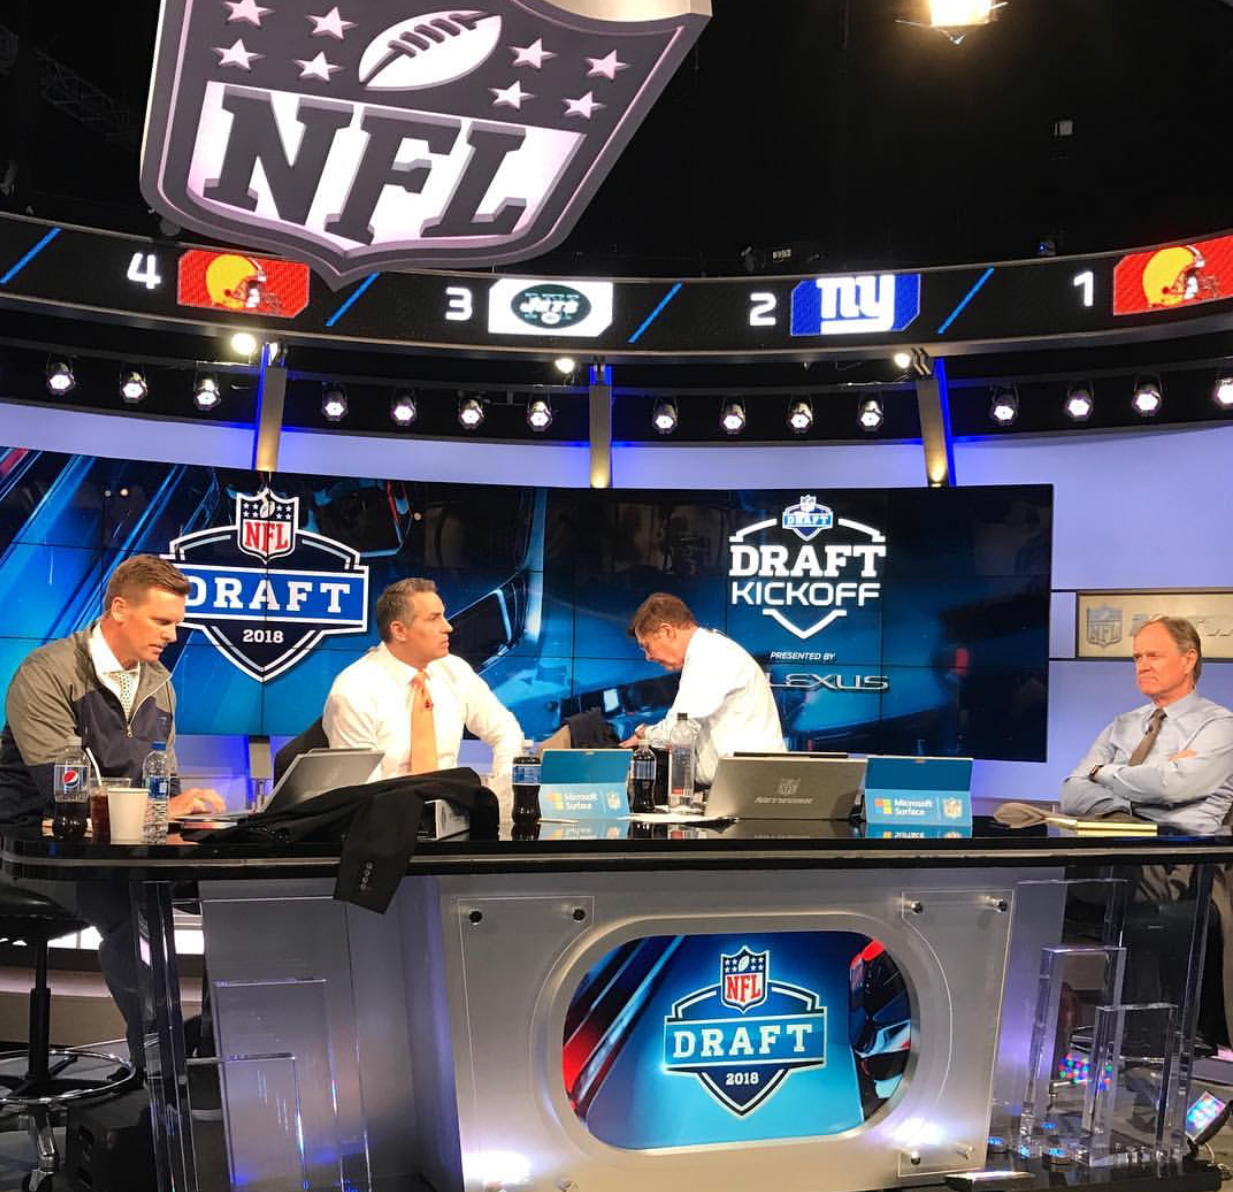 Dan Hellie (last on the left) pictured with other analysts during the 2018 Draft segment in April. Photo obtained from @danhellie via Instagram.